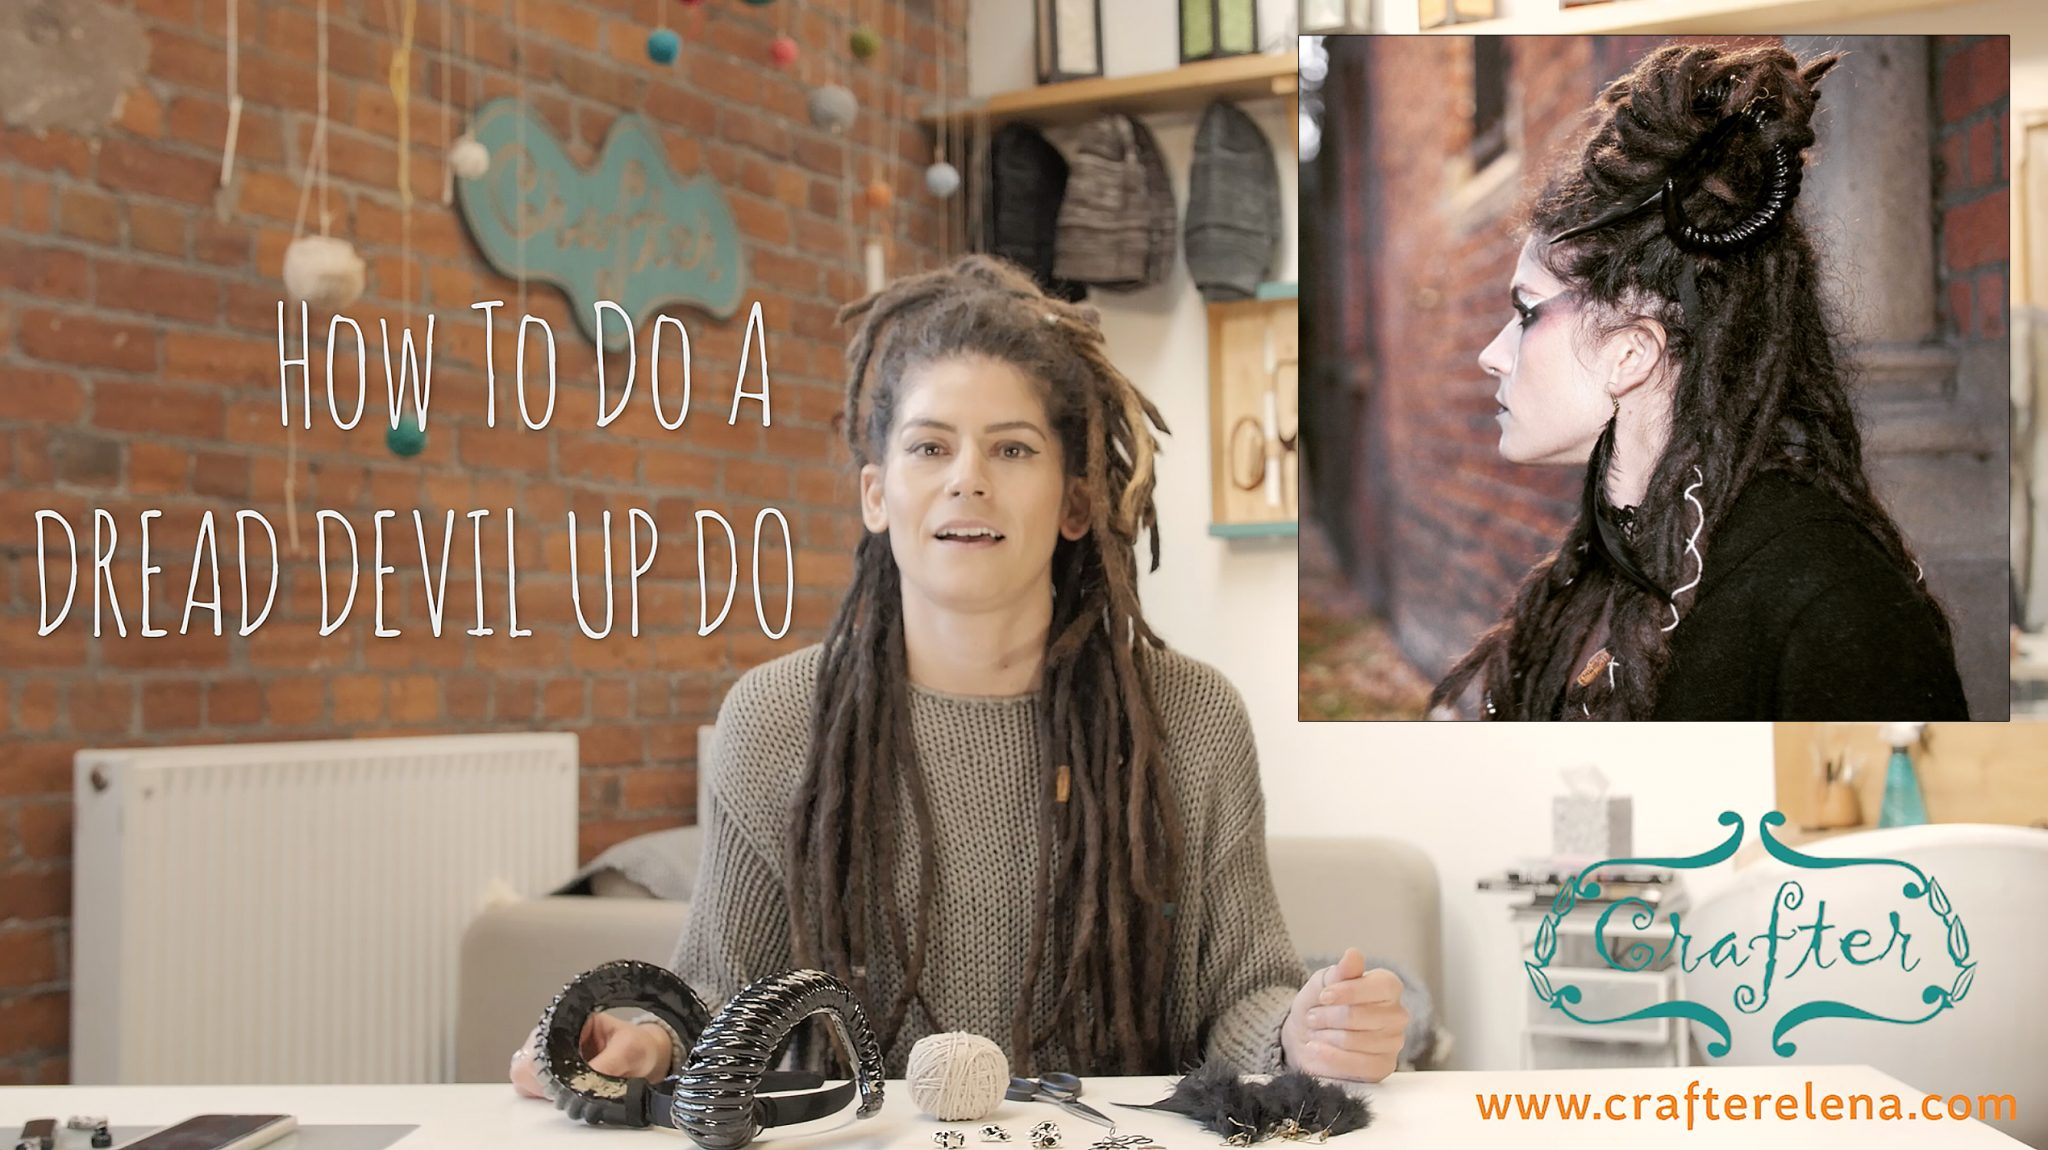 Halloween Dread Devil Up Do Tutorial